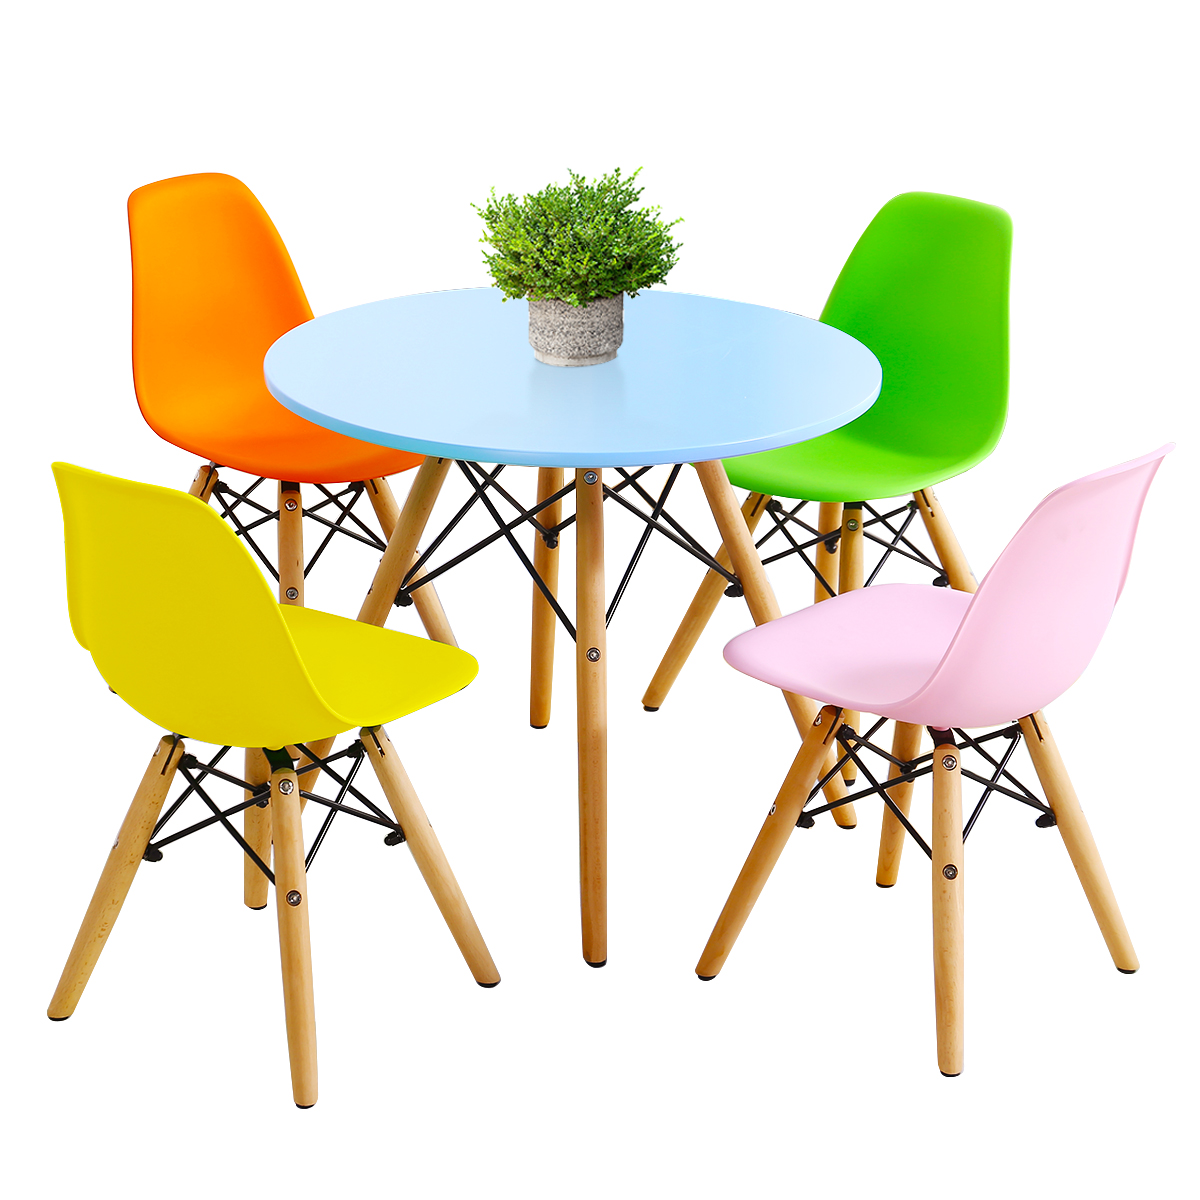 Kids Table &Chair Set Simple Mid-Century Dining Play Table W/ 5Chairs Toddle